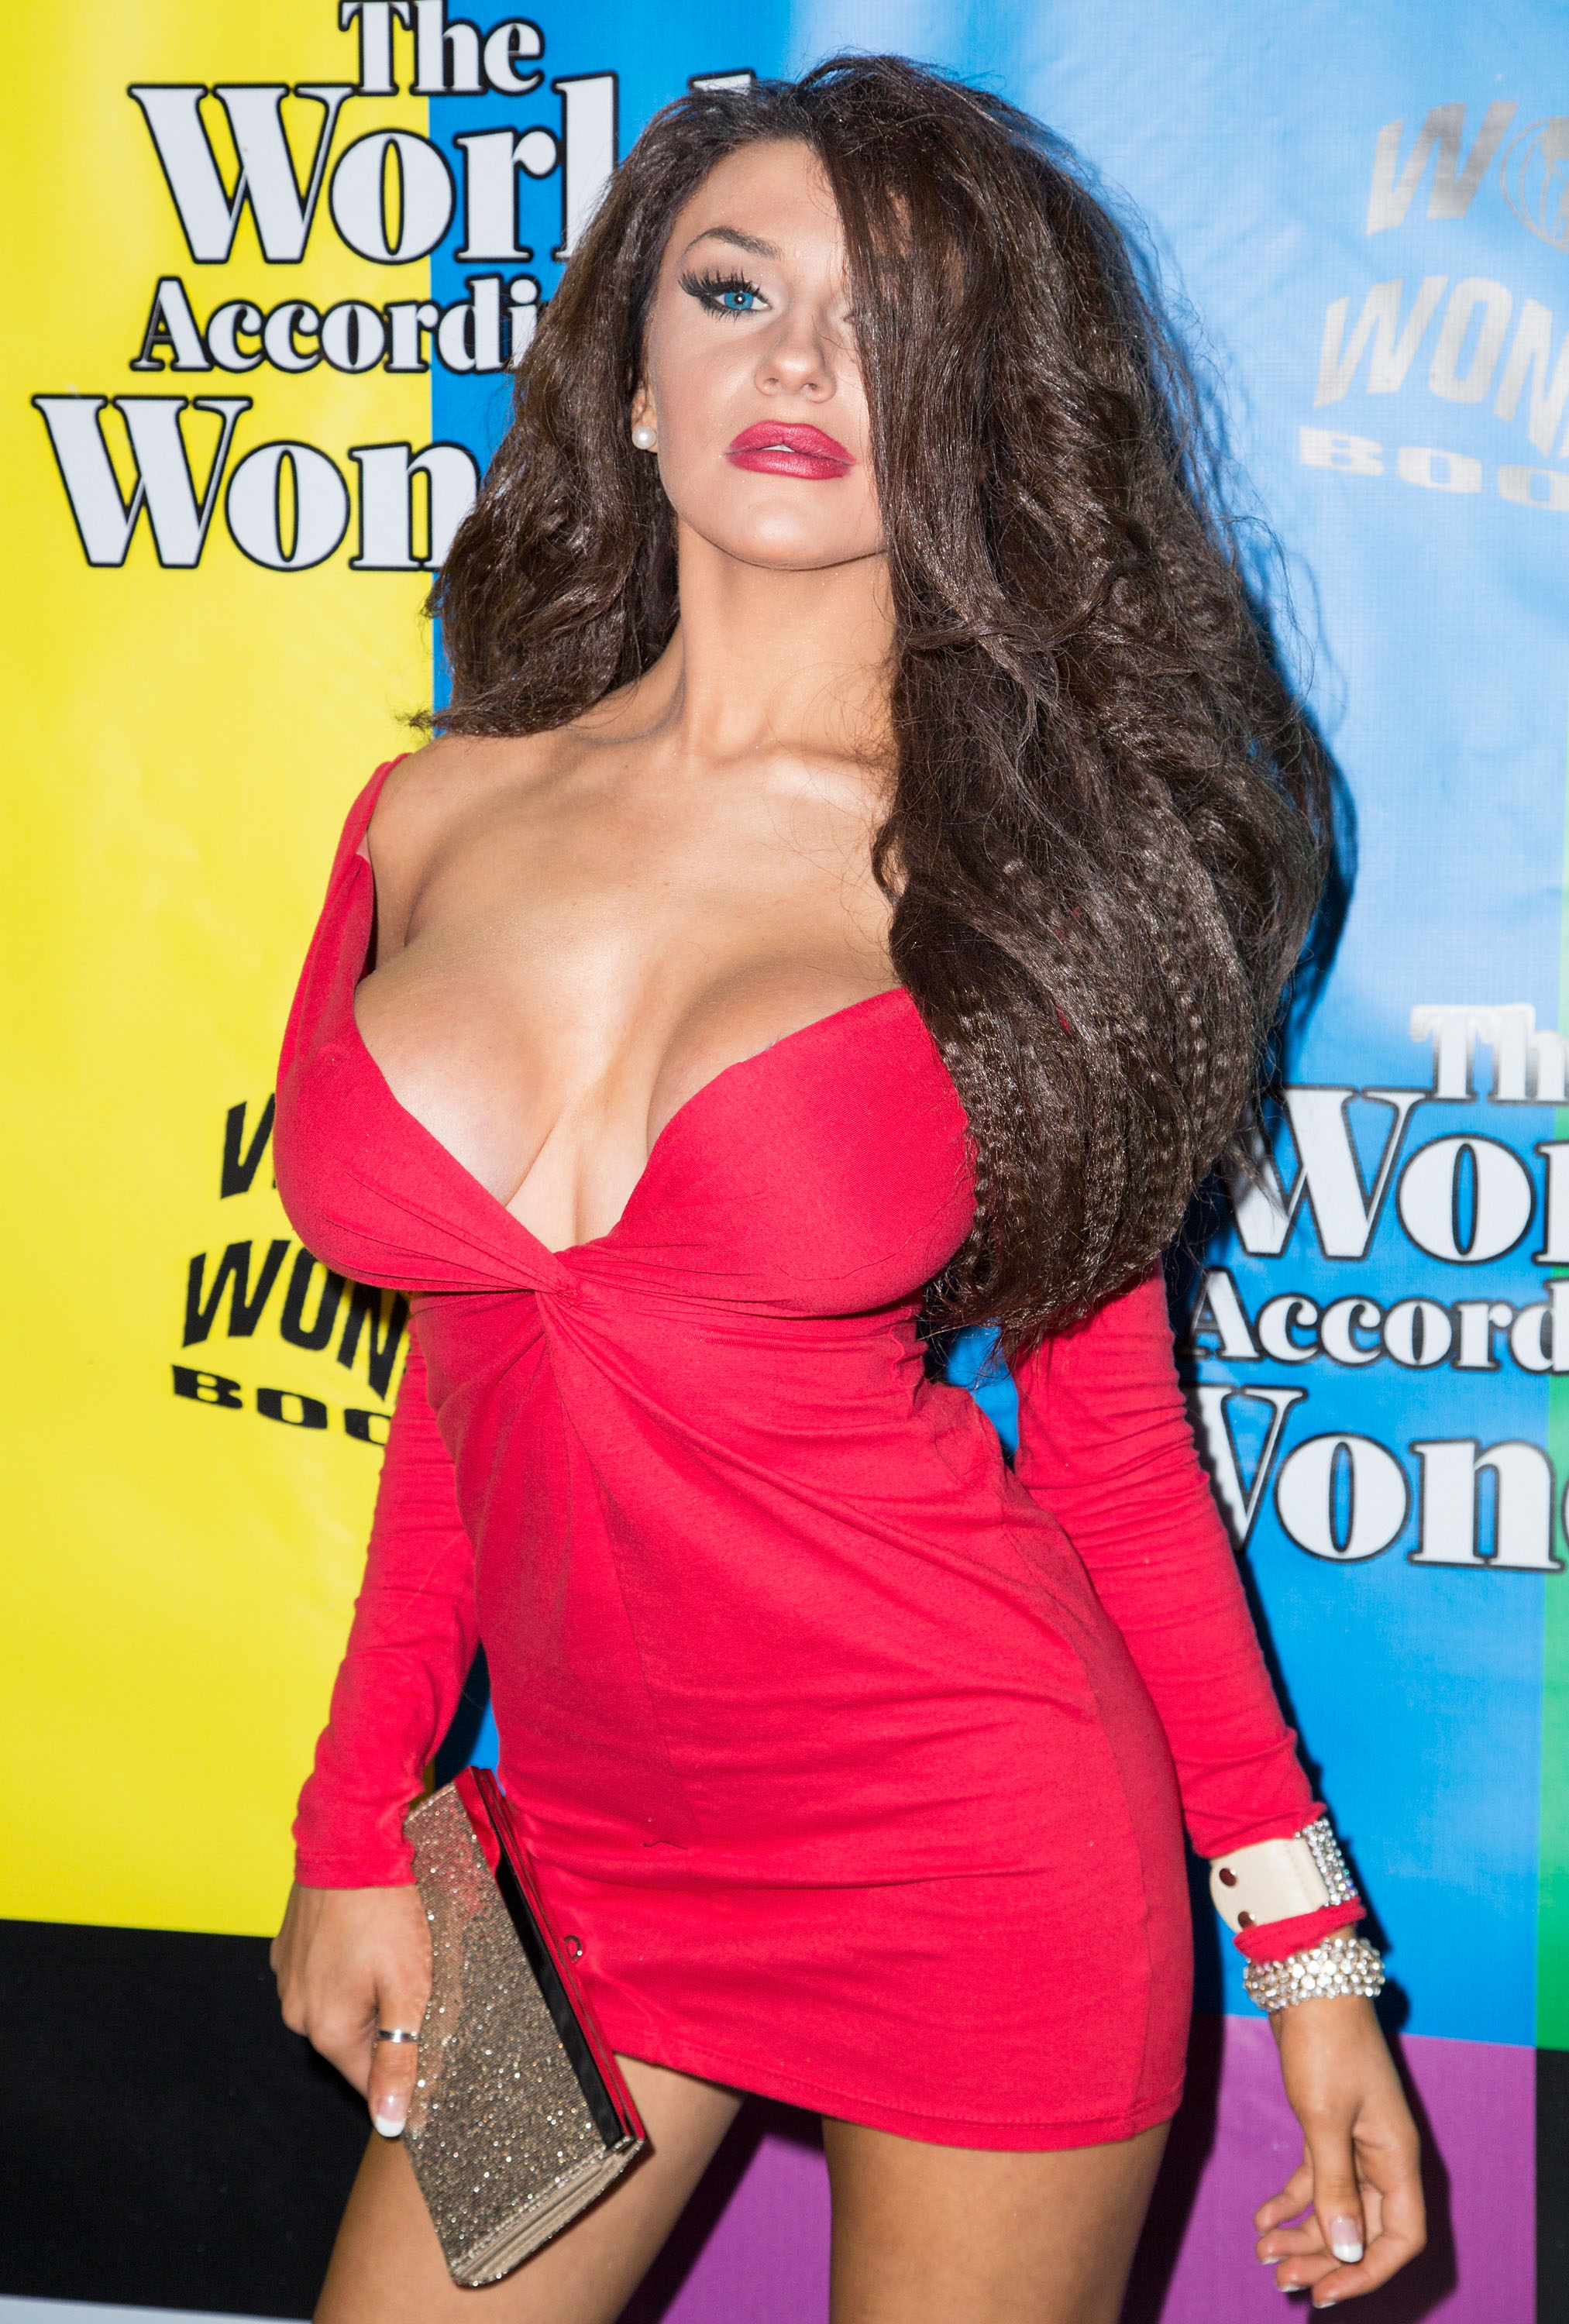 UNIVERSAL CITY, CA - DECEMBER 12:  TV personality Courtney Stodden attends the World of Wonder's 1st Annual WOWie Awards at The Globe Theatre on December 12, 2013 in Universal City, California.  (Photo by Vincent Sandoval/Getty Images)